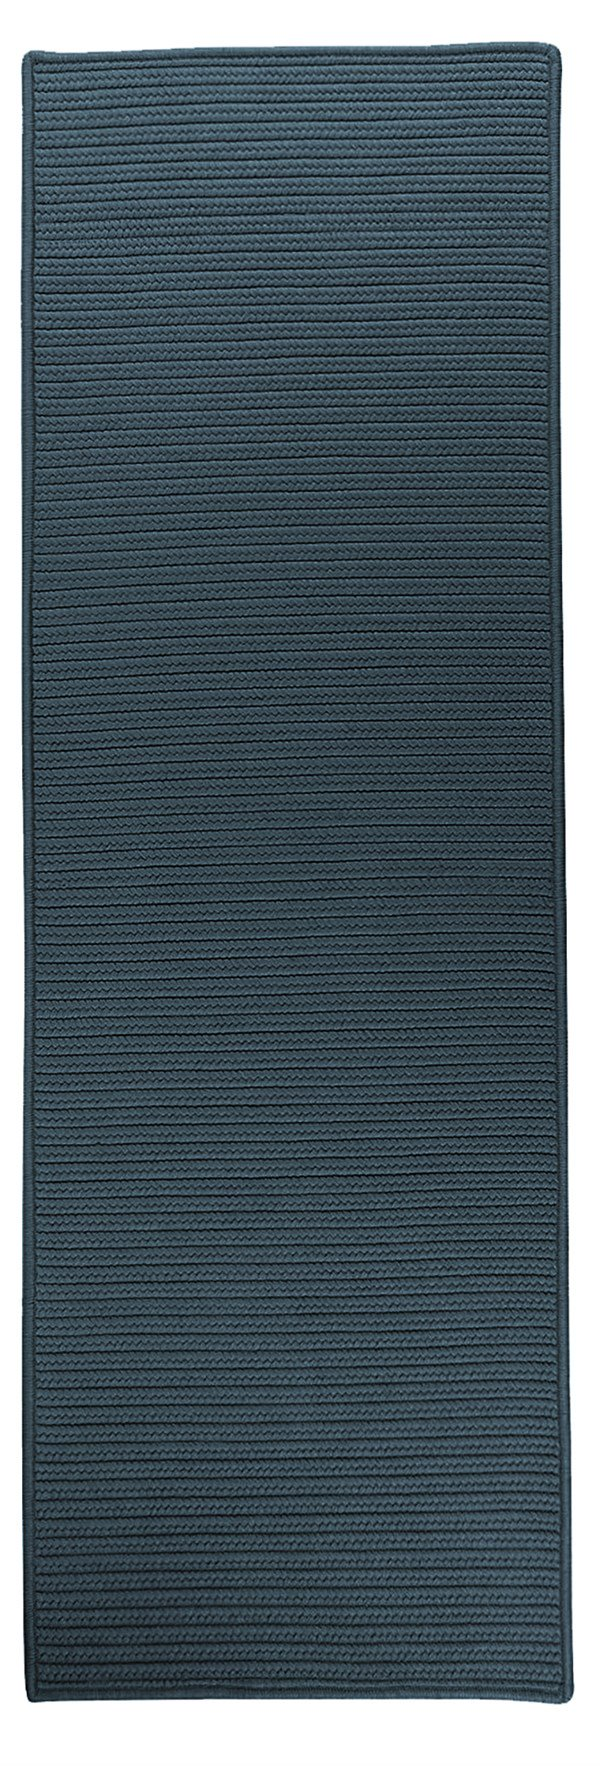 Colonial Mills Reversible Flat-Braid (Rect) Runner RT57 Area Rug